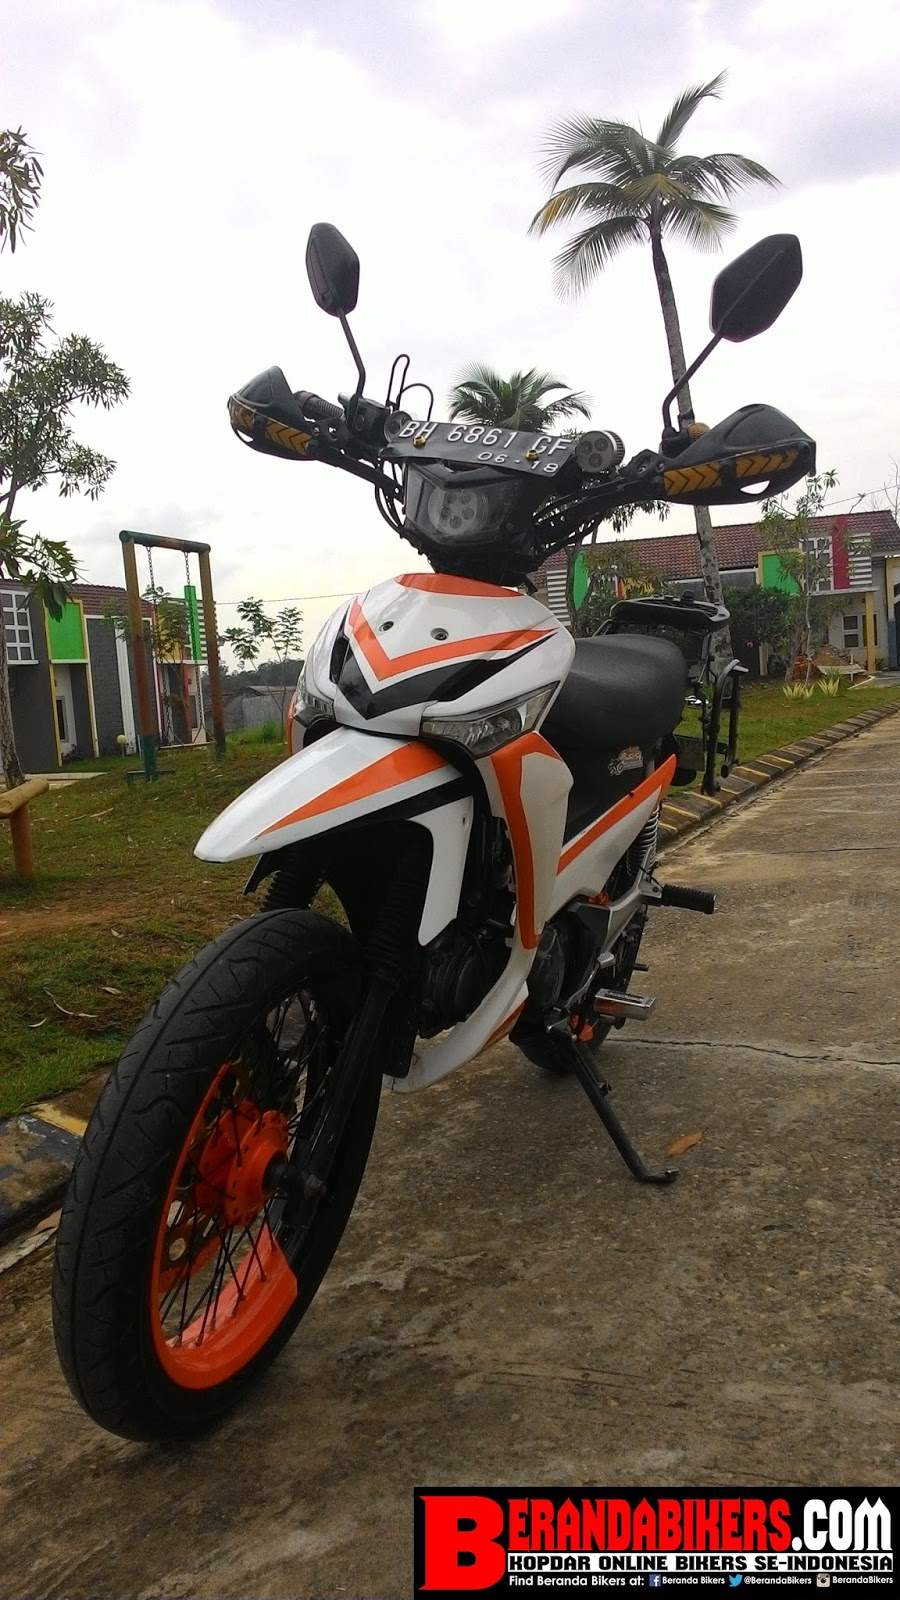 BerandaBikerscom Kopdar Online Bikers Indonesia Modifikasi